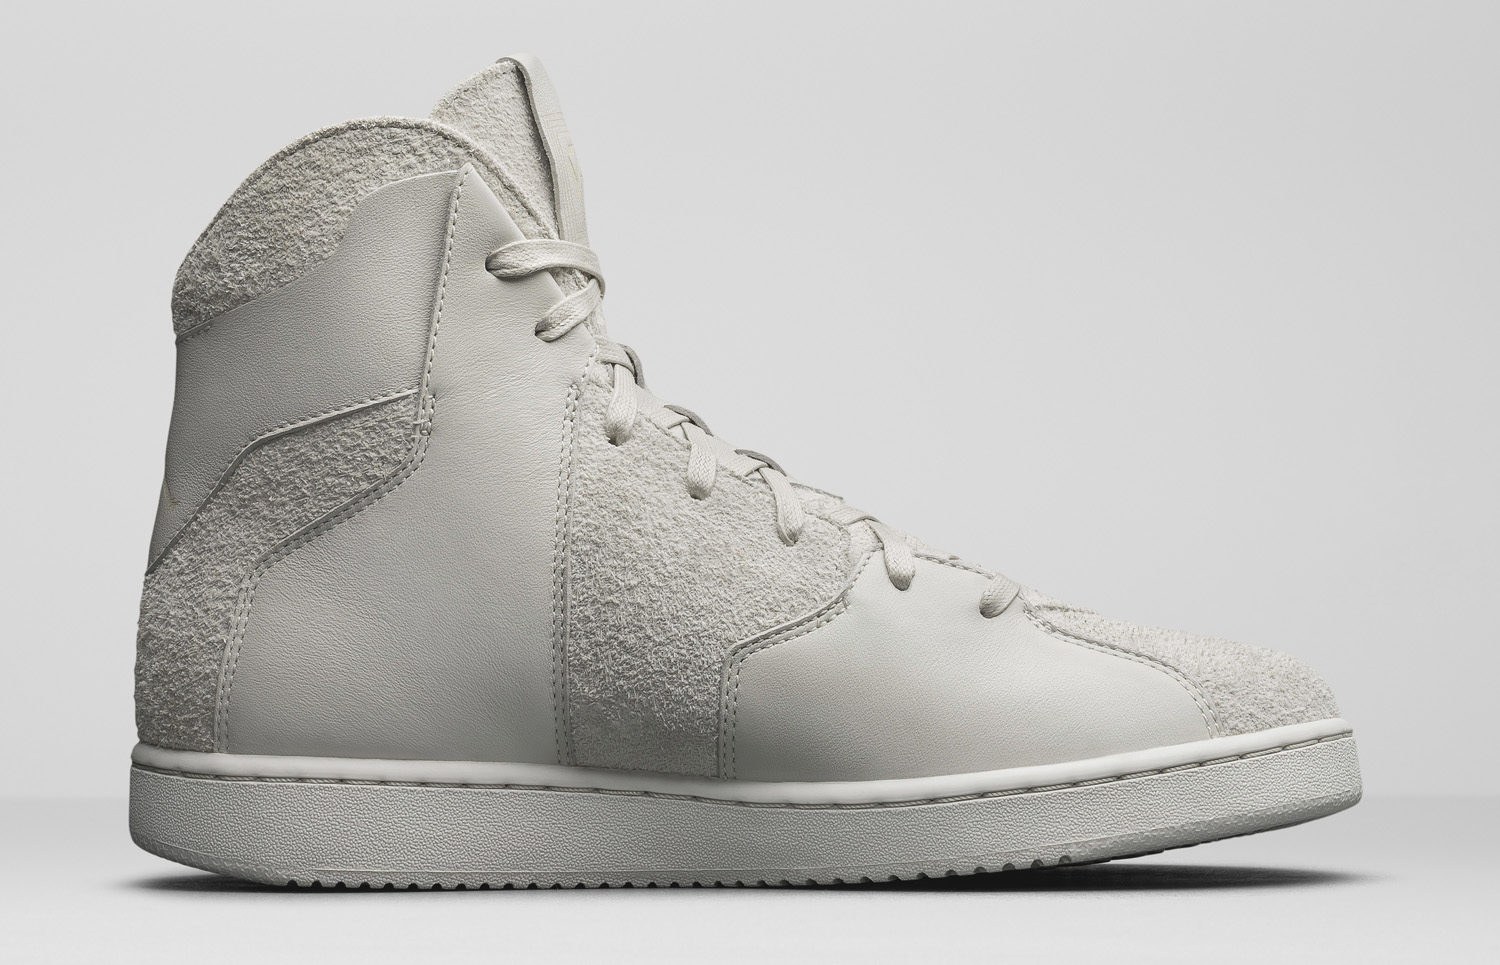 Jordan Westbrook 0.2 Cream Medial